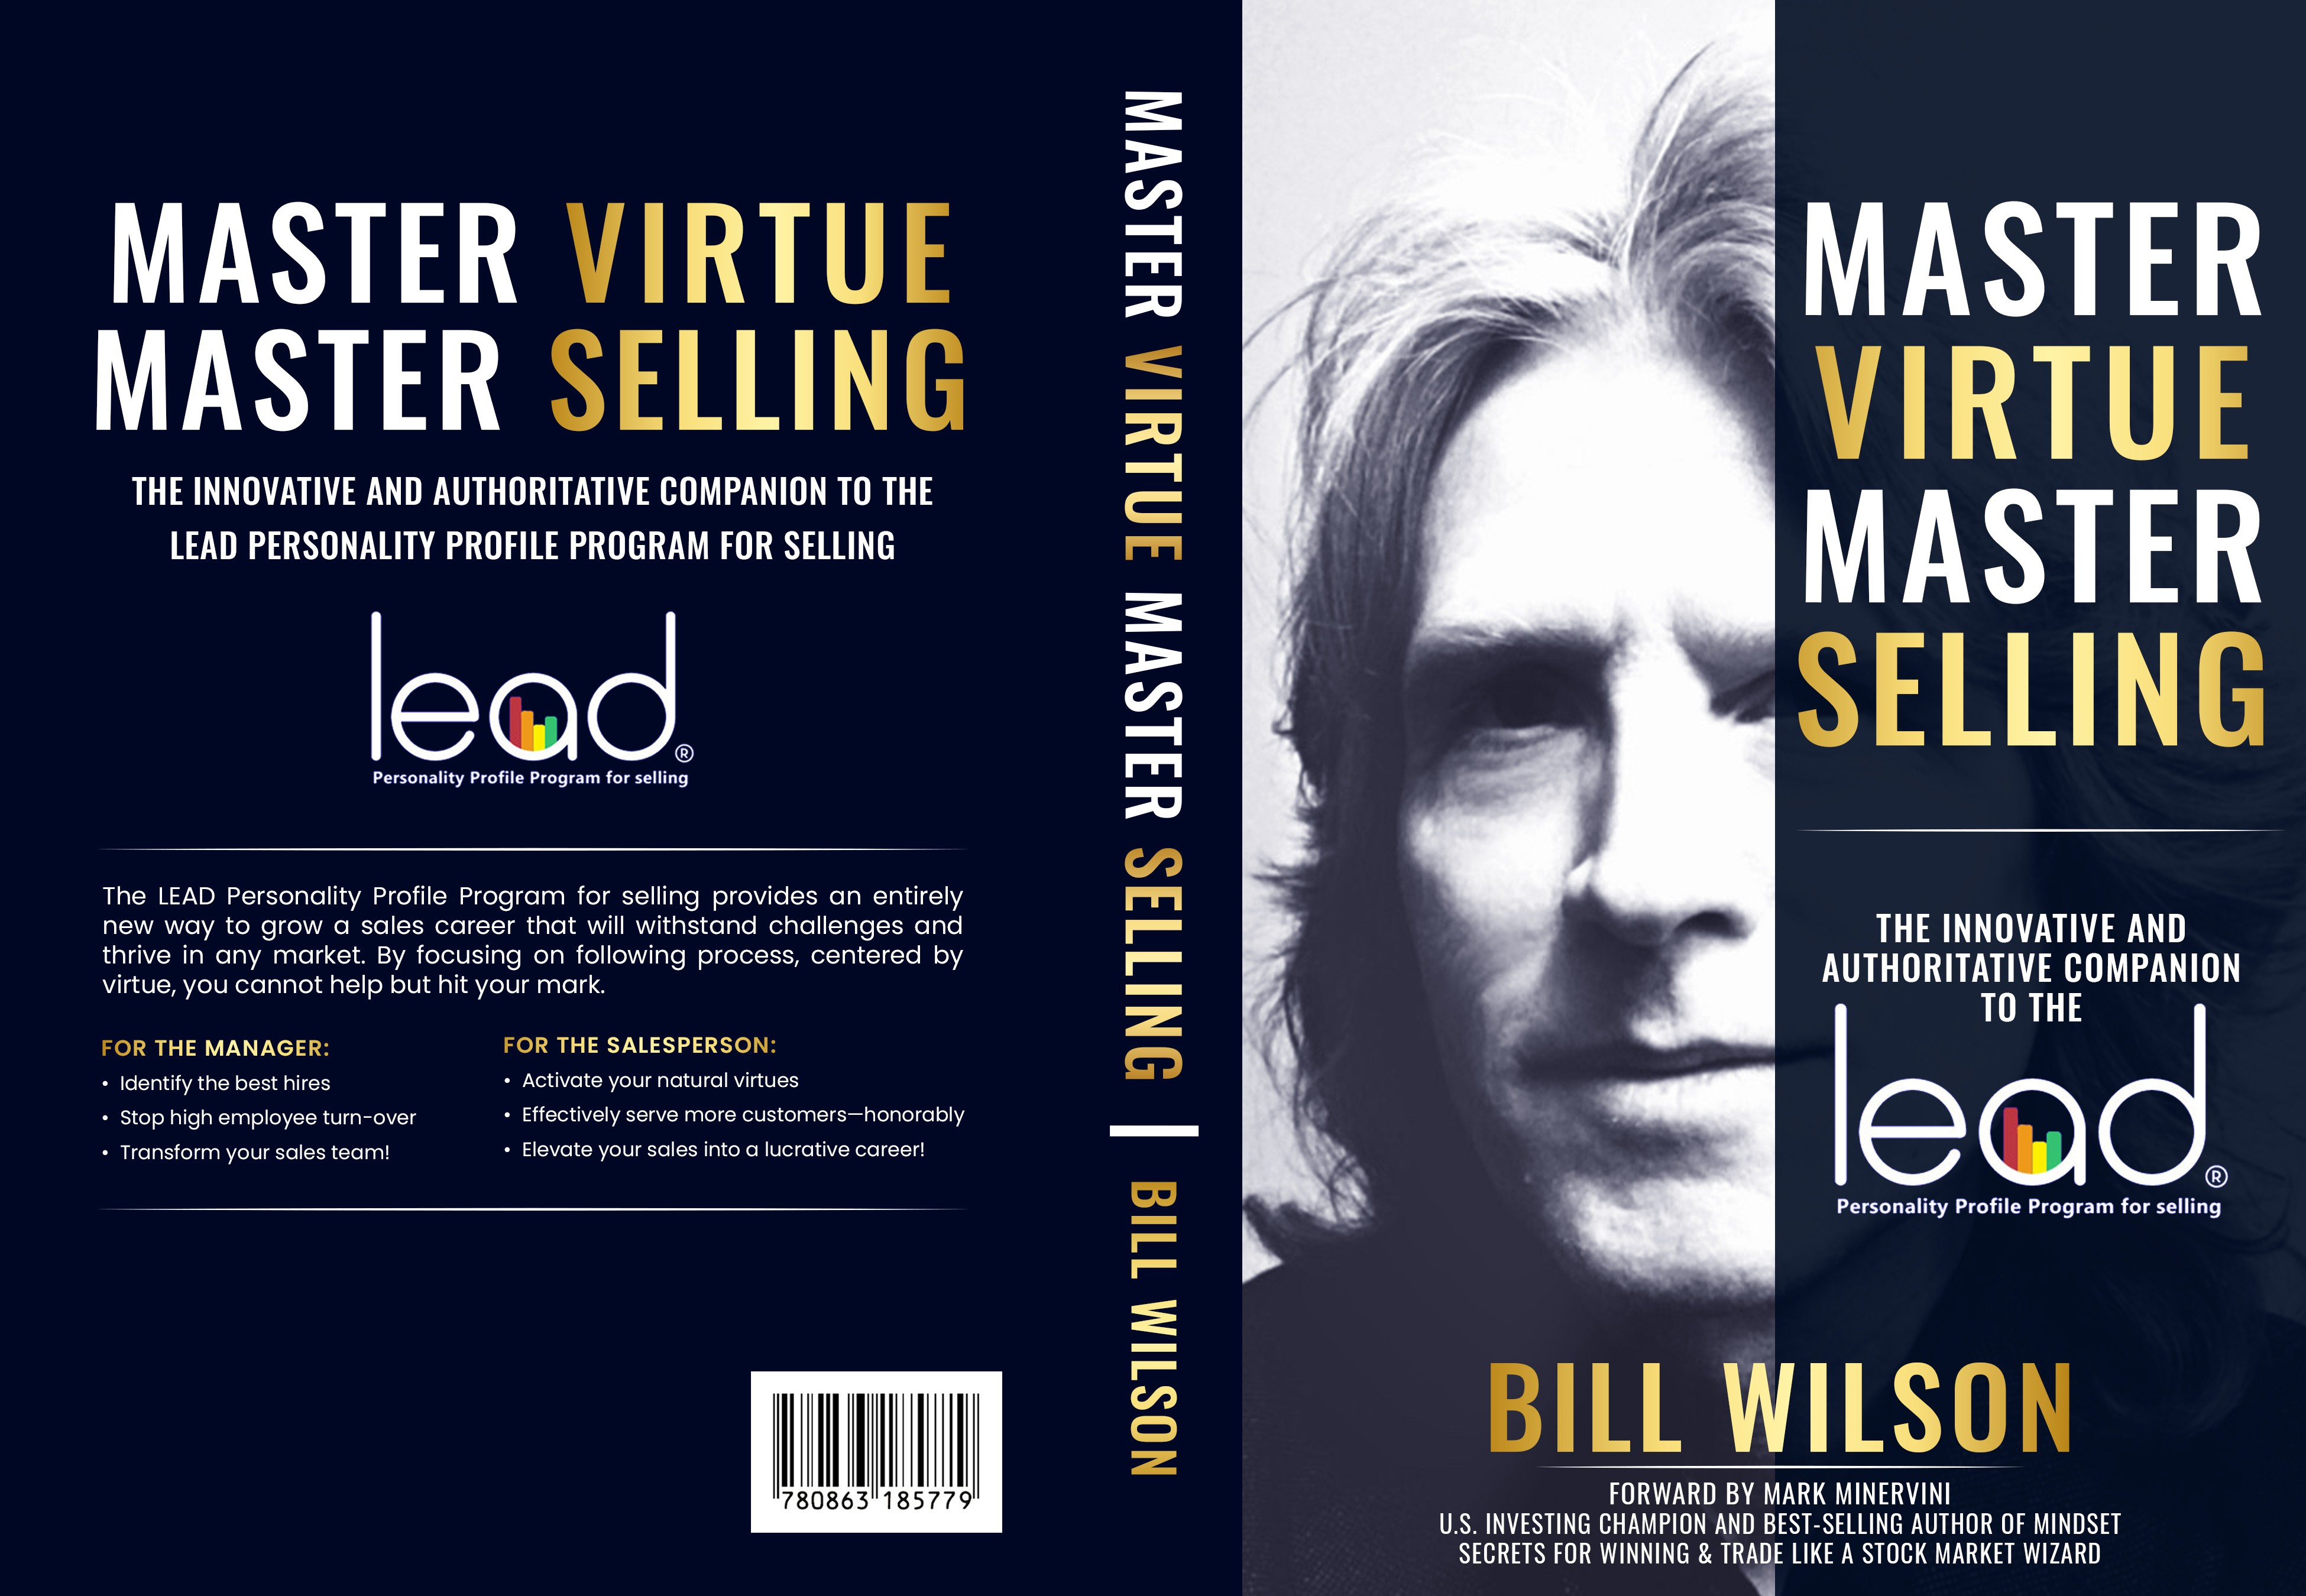 Master Virtue, Master Selling Book Design. Author's first book. He plans to become well known.